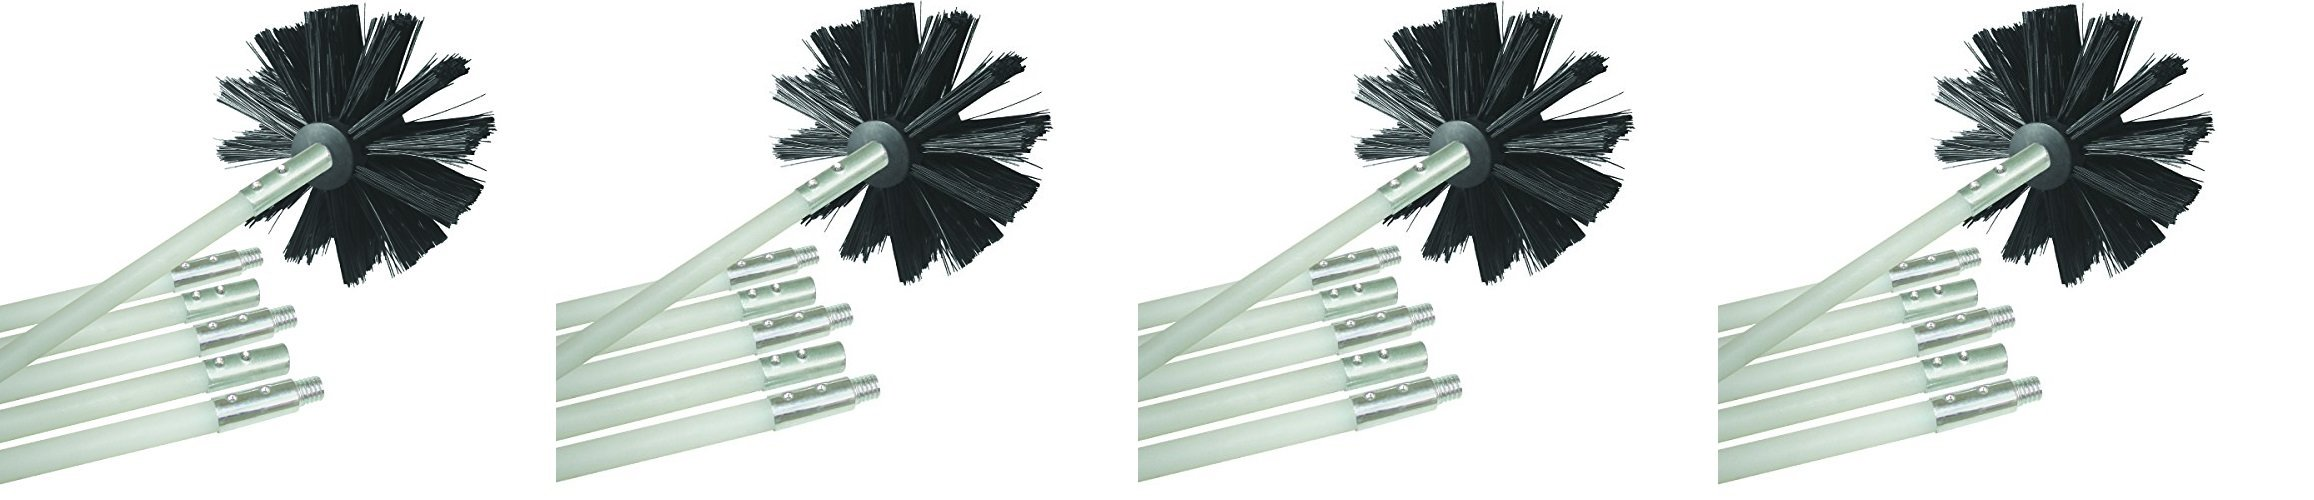 Deflecto Dryer Duct Cleaning Kit, Lint Remover, Extends Up To 12 Feet, Synthetic Brush Head, Use With or Without a Power Drill (Pack of 4)